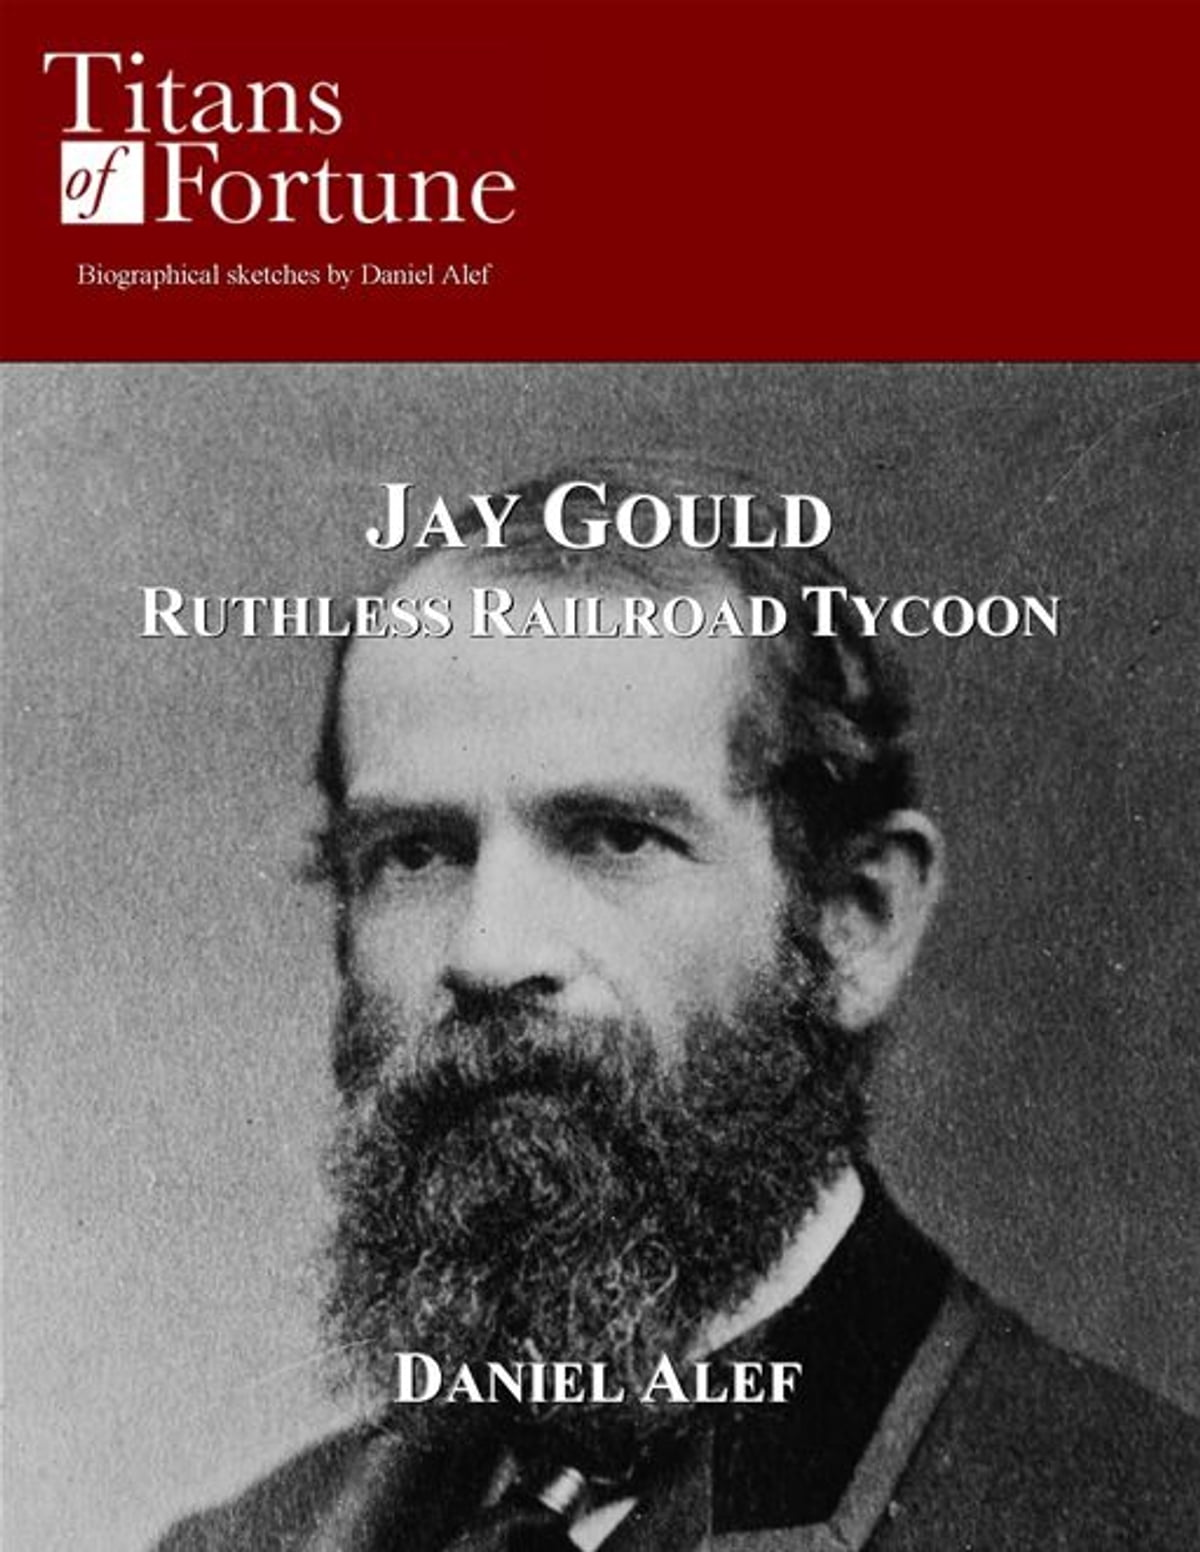 Jay Gould: Ruthless Railroad Tycoon Ebook By Daniel Alef  9781608043064   Rakuten Kobo